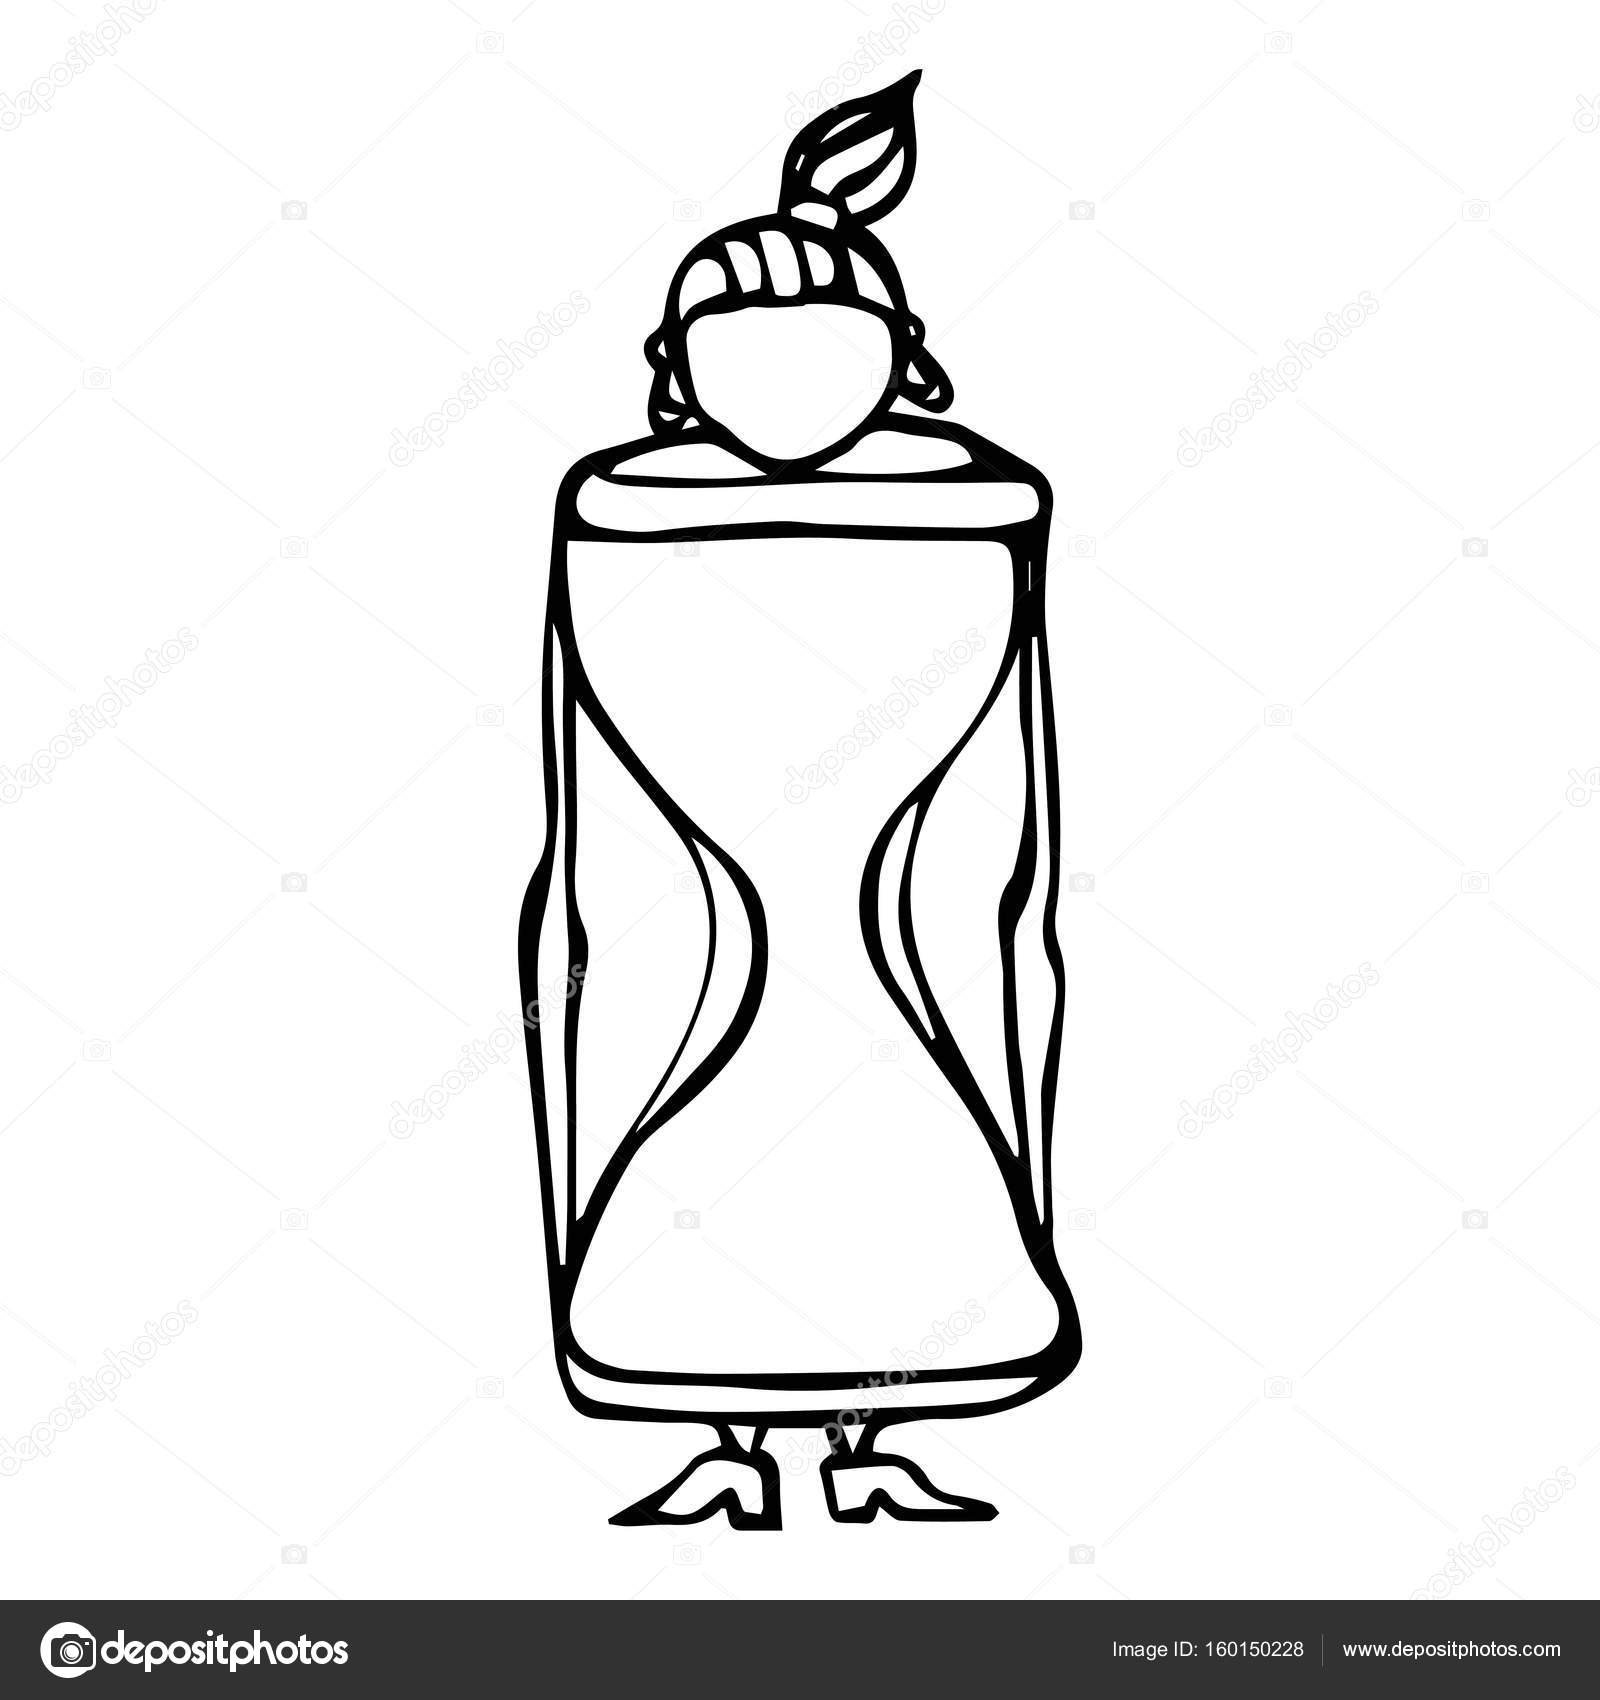 1600x1700 Caricature Hourglass Female Body Shape Sketch. Hand Drawn Vector